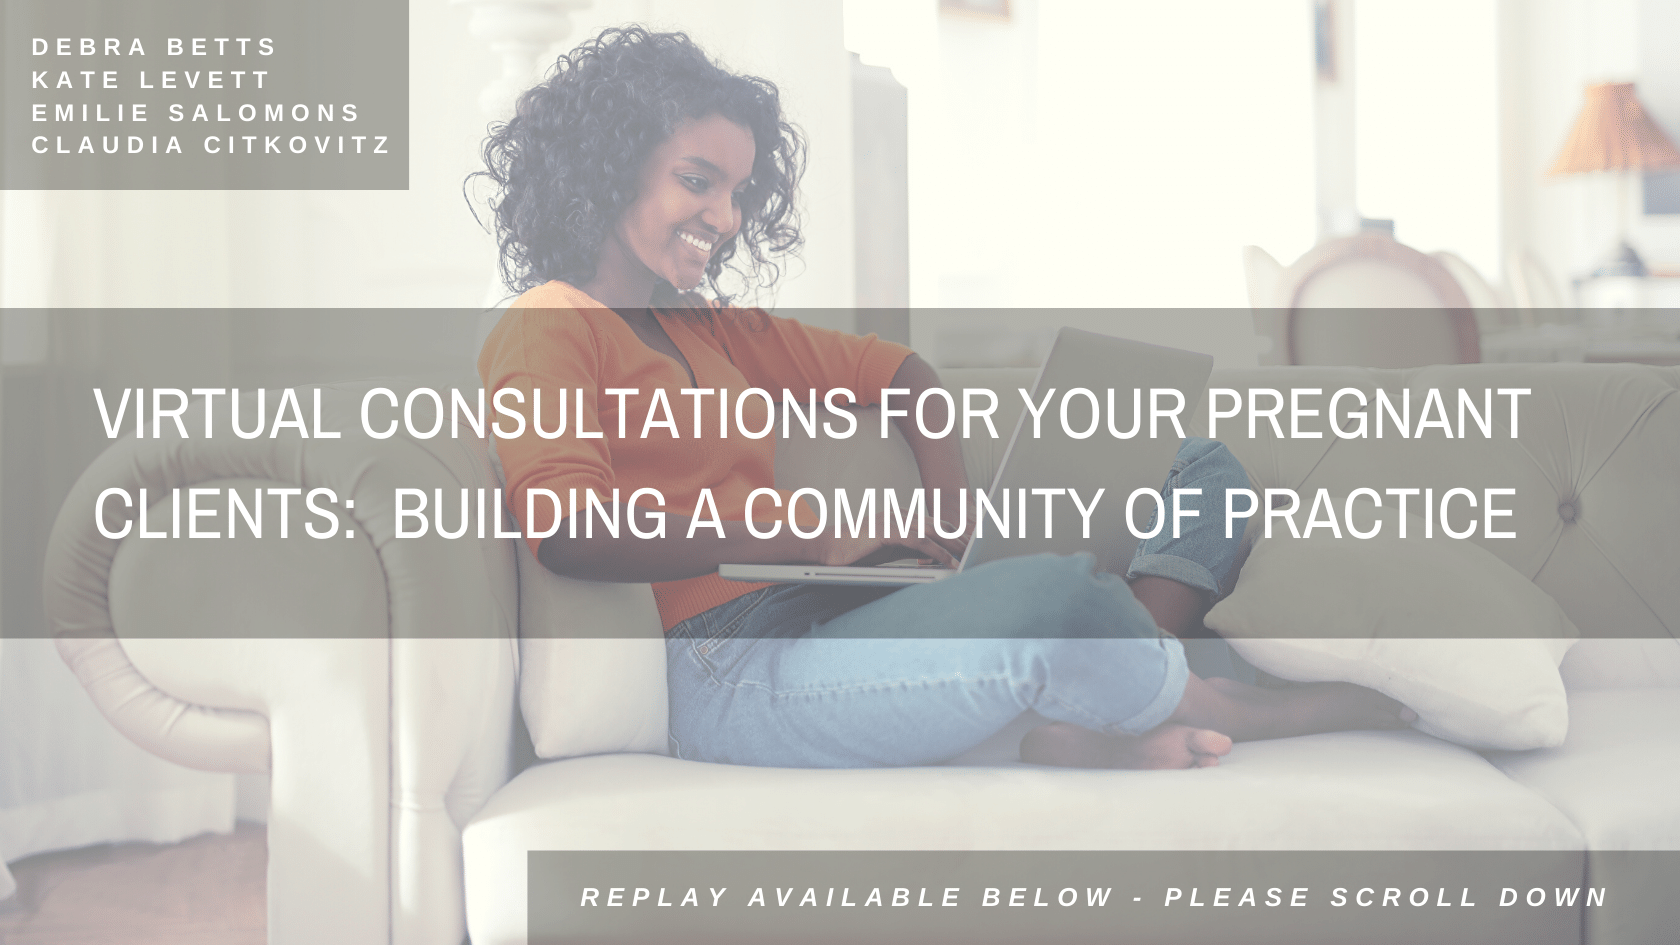 Virtual consultations for your pregnant clients: Building a community of practice